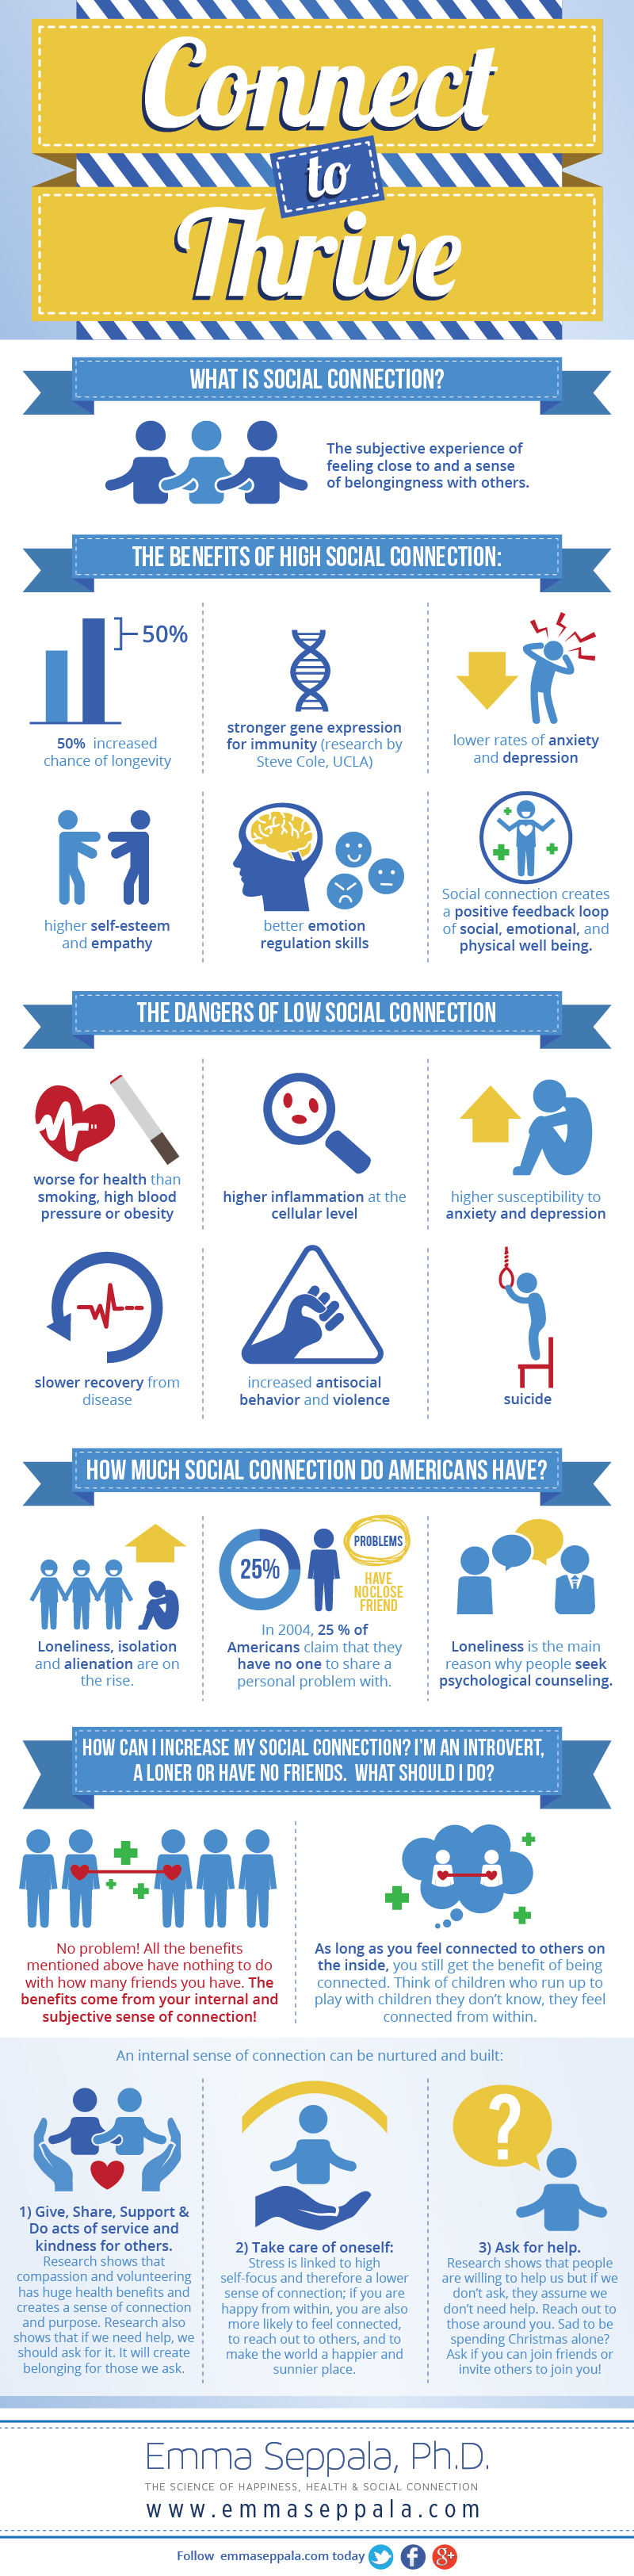 Connectedness & Health: The Science of Social Connection